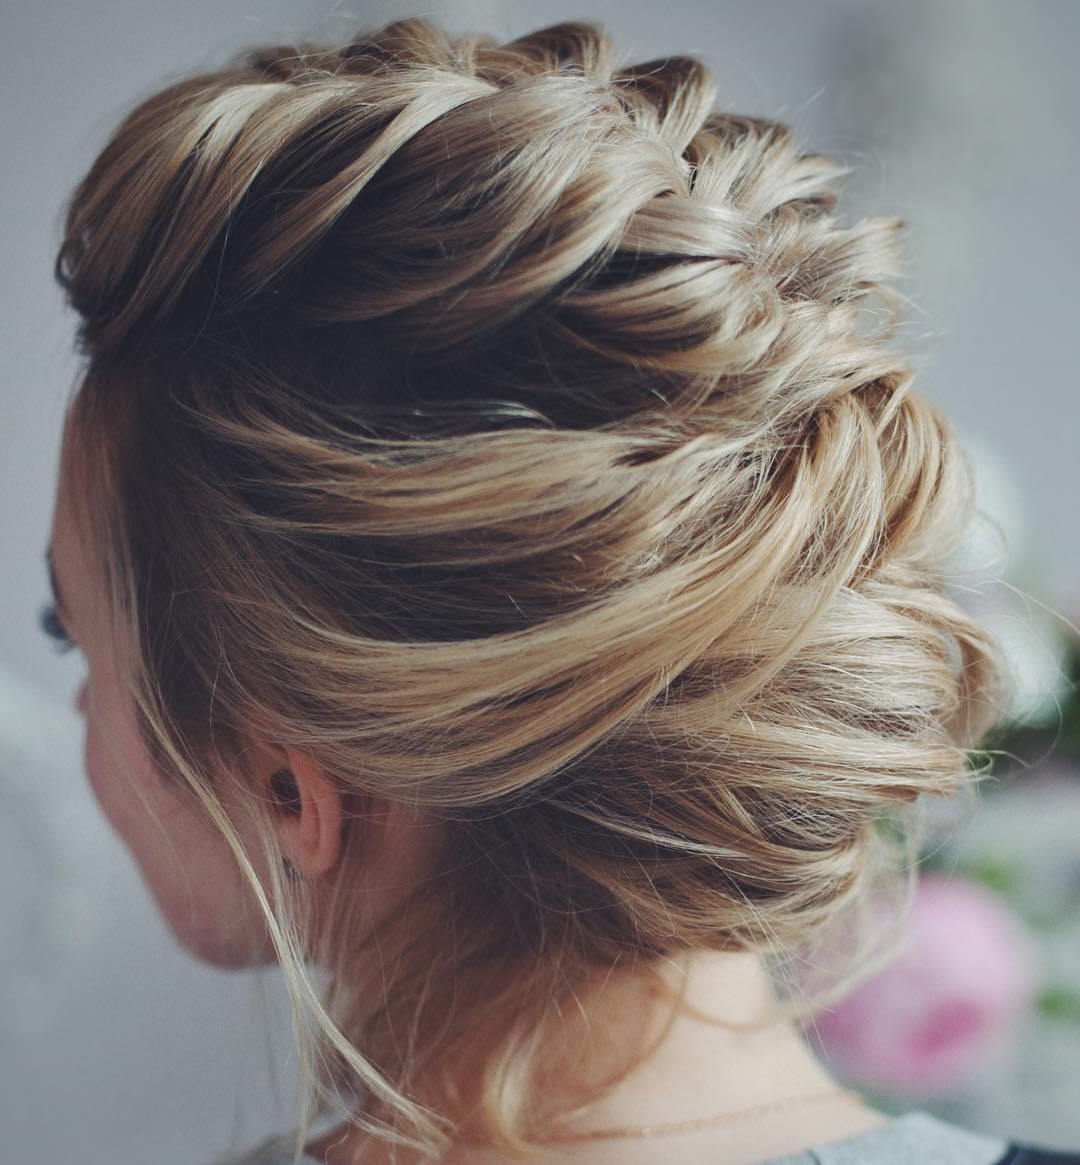 50 Hottest Prom Hairstyles For Short Hair Within Current Diagonal Braid And Loose Bun Hairstyles For Prom (View 3 of 20)